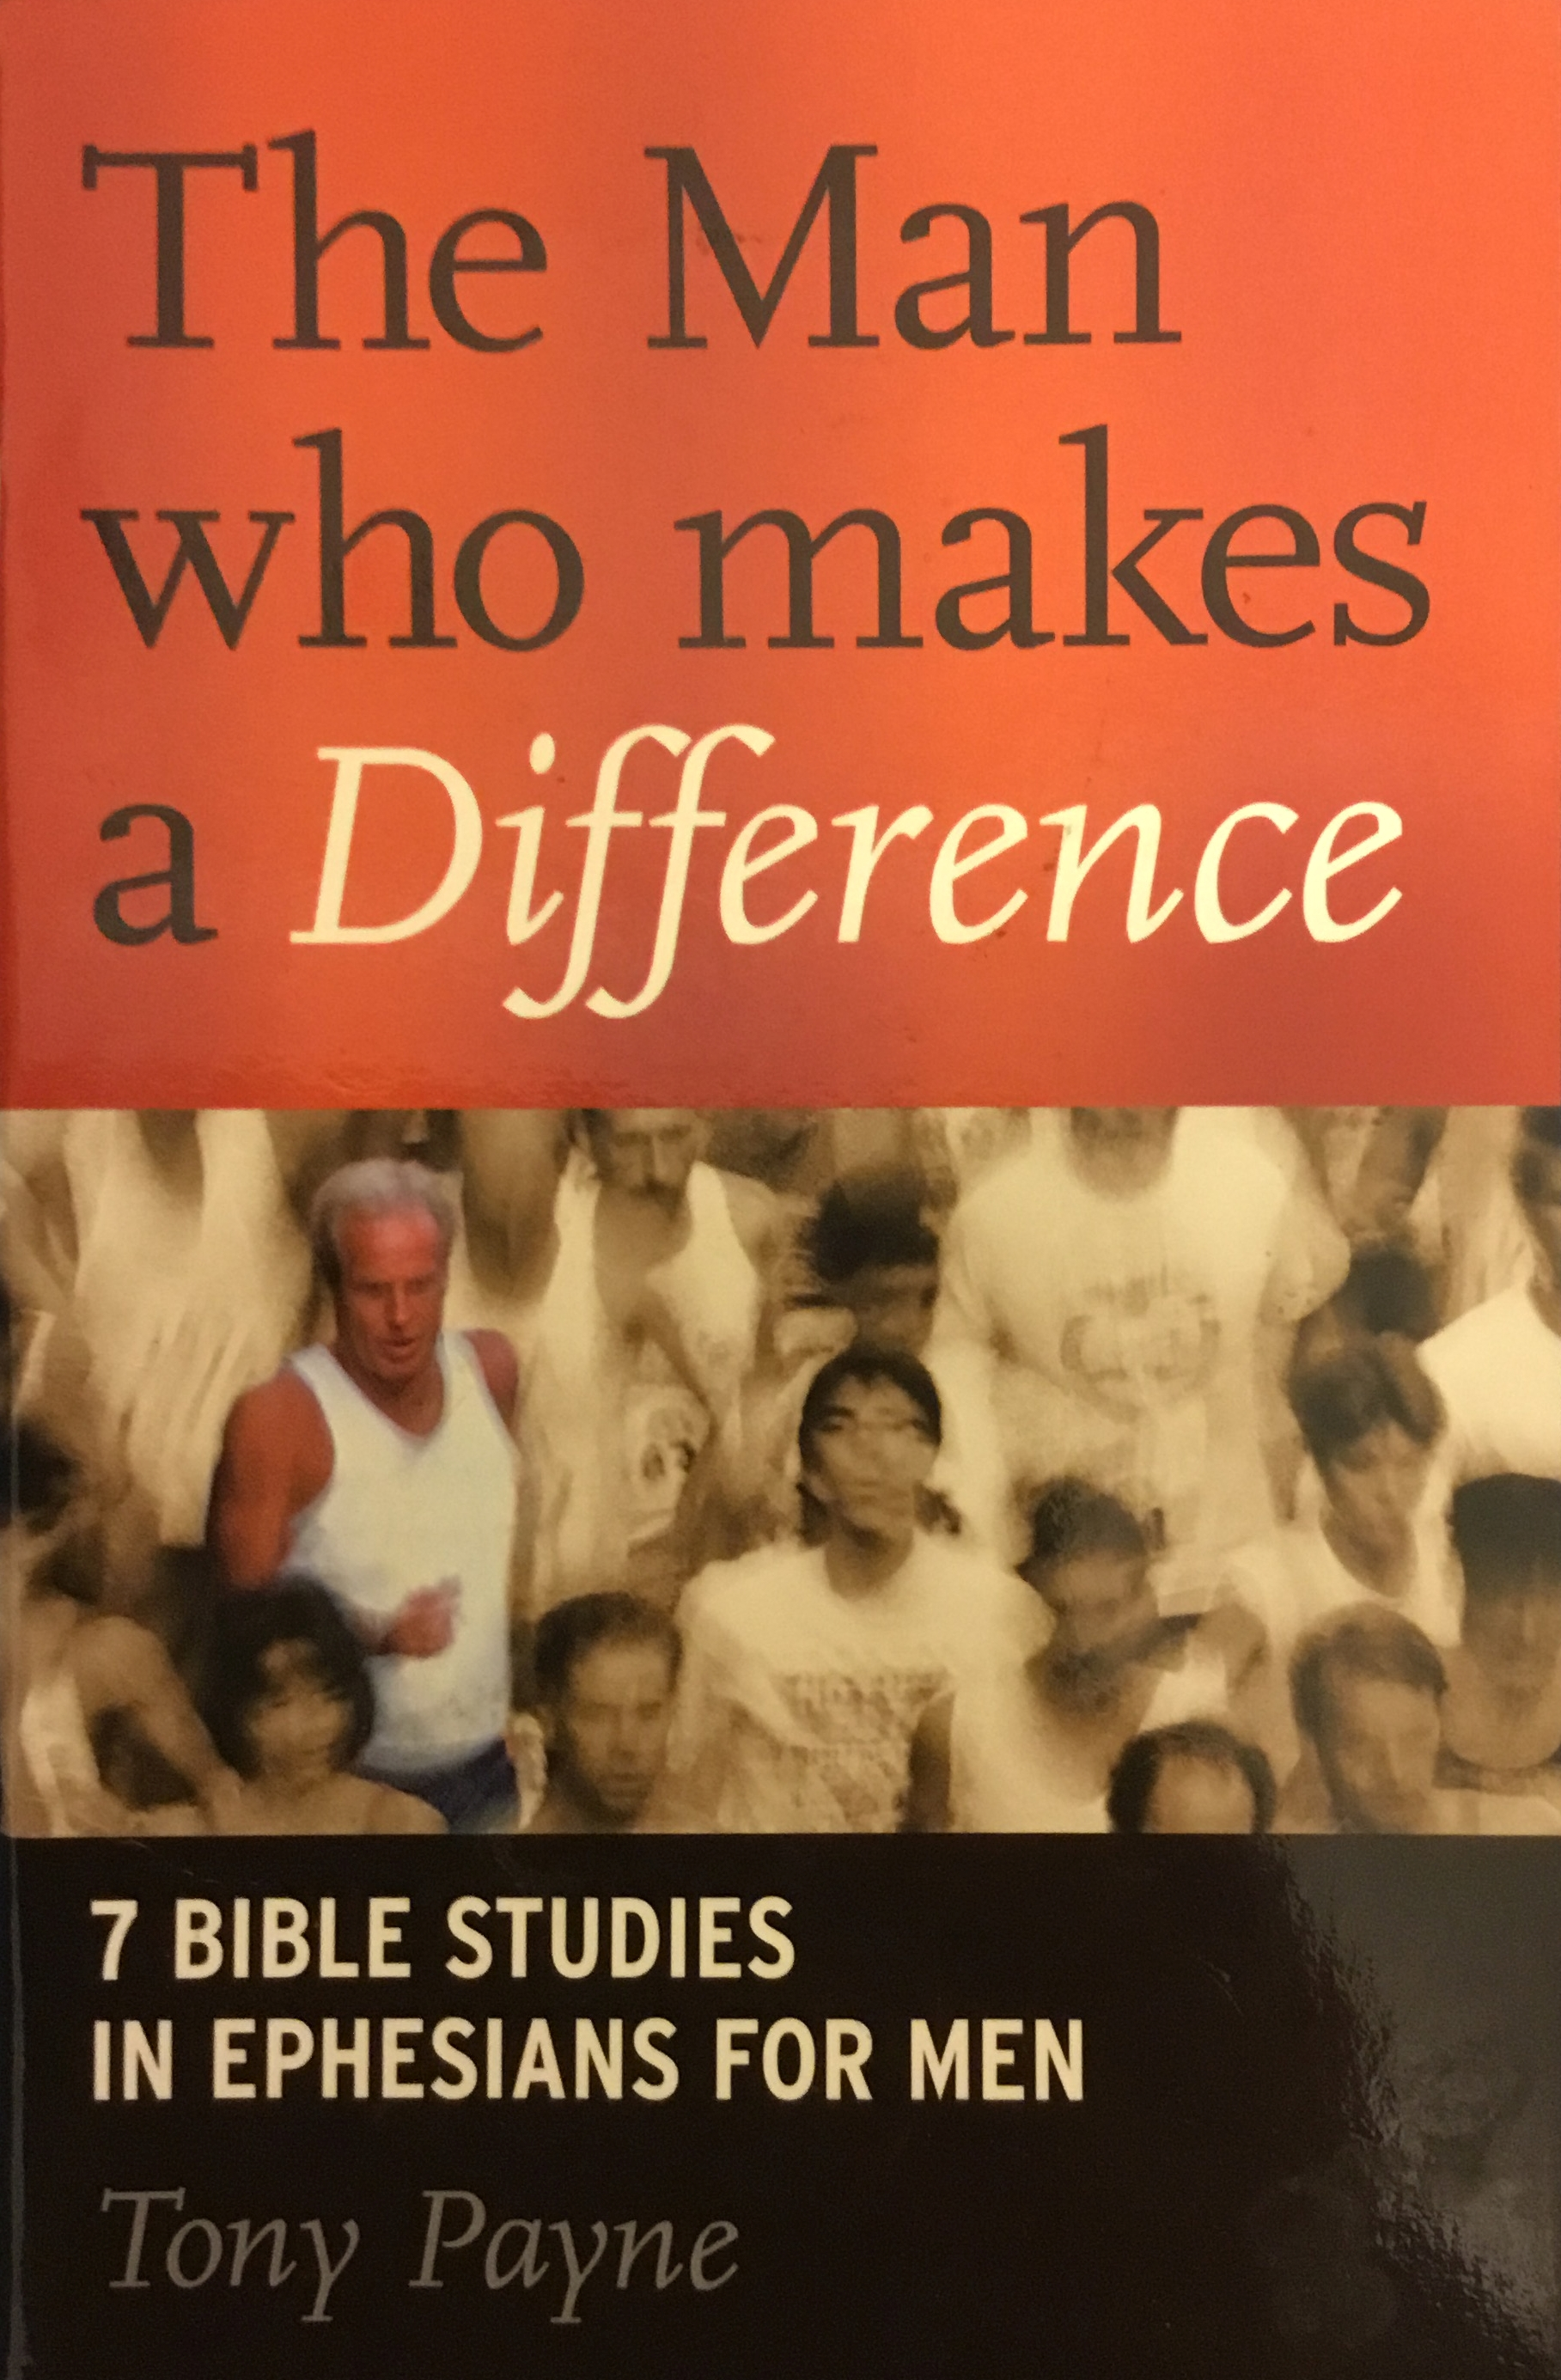 The man who makes a difference: studies in Ephesians for men